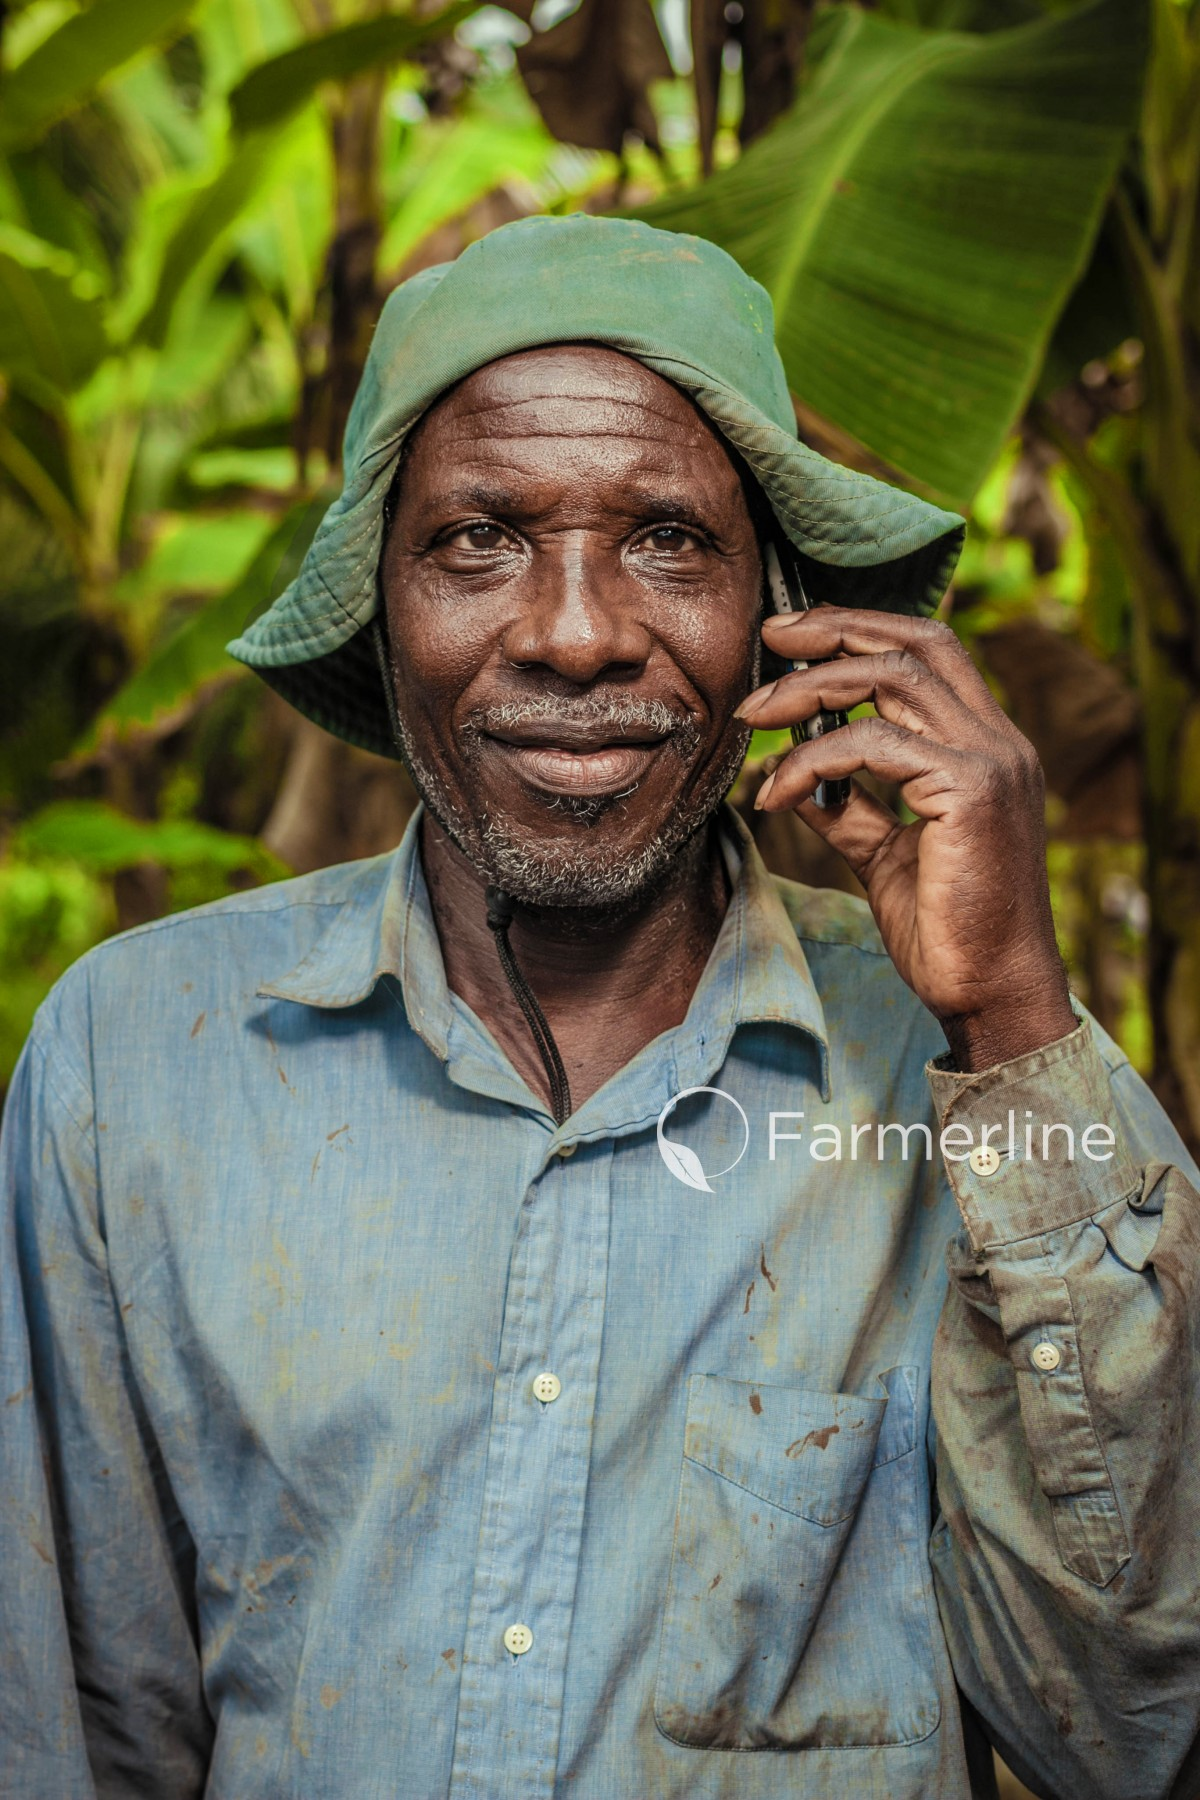 FARMERLINE CUSTOMER RECEIVING TROPICAL WEATHER FORECAST VIA VOICE IN HIS LOCAL LANGUAGE, COURTESY OF FARMERLINE